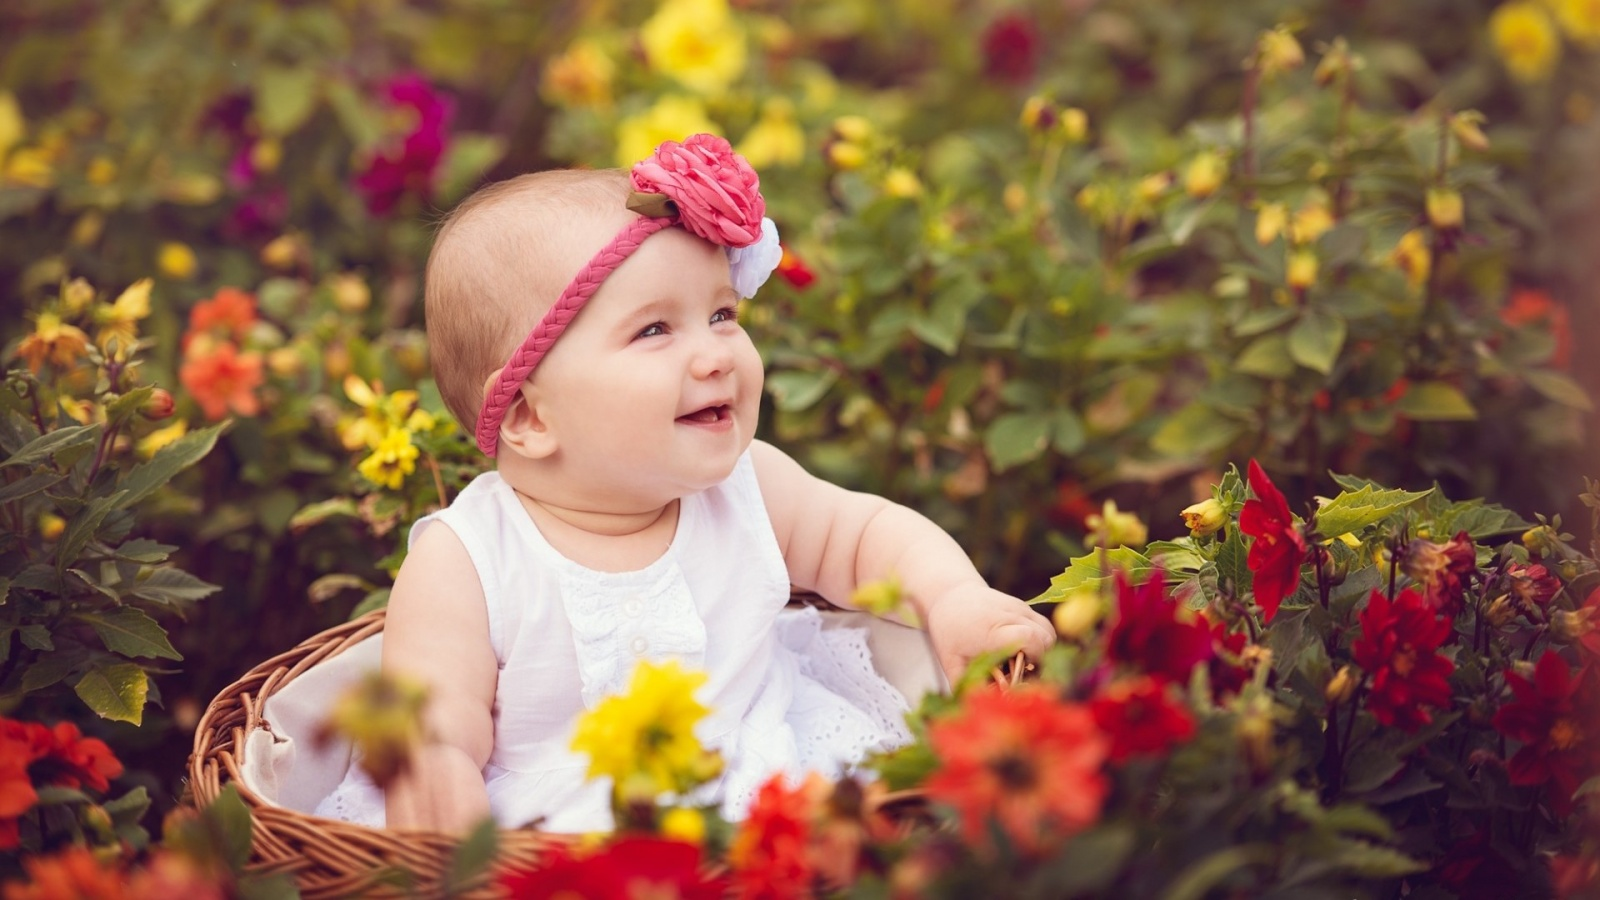 Cute Girl With Rose Cute Baby With Rose Cute Girl